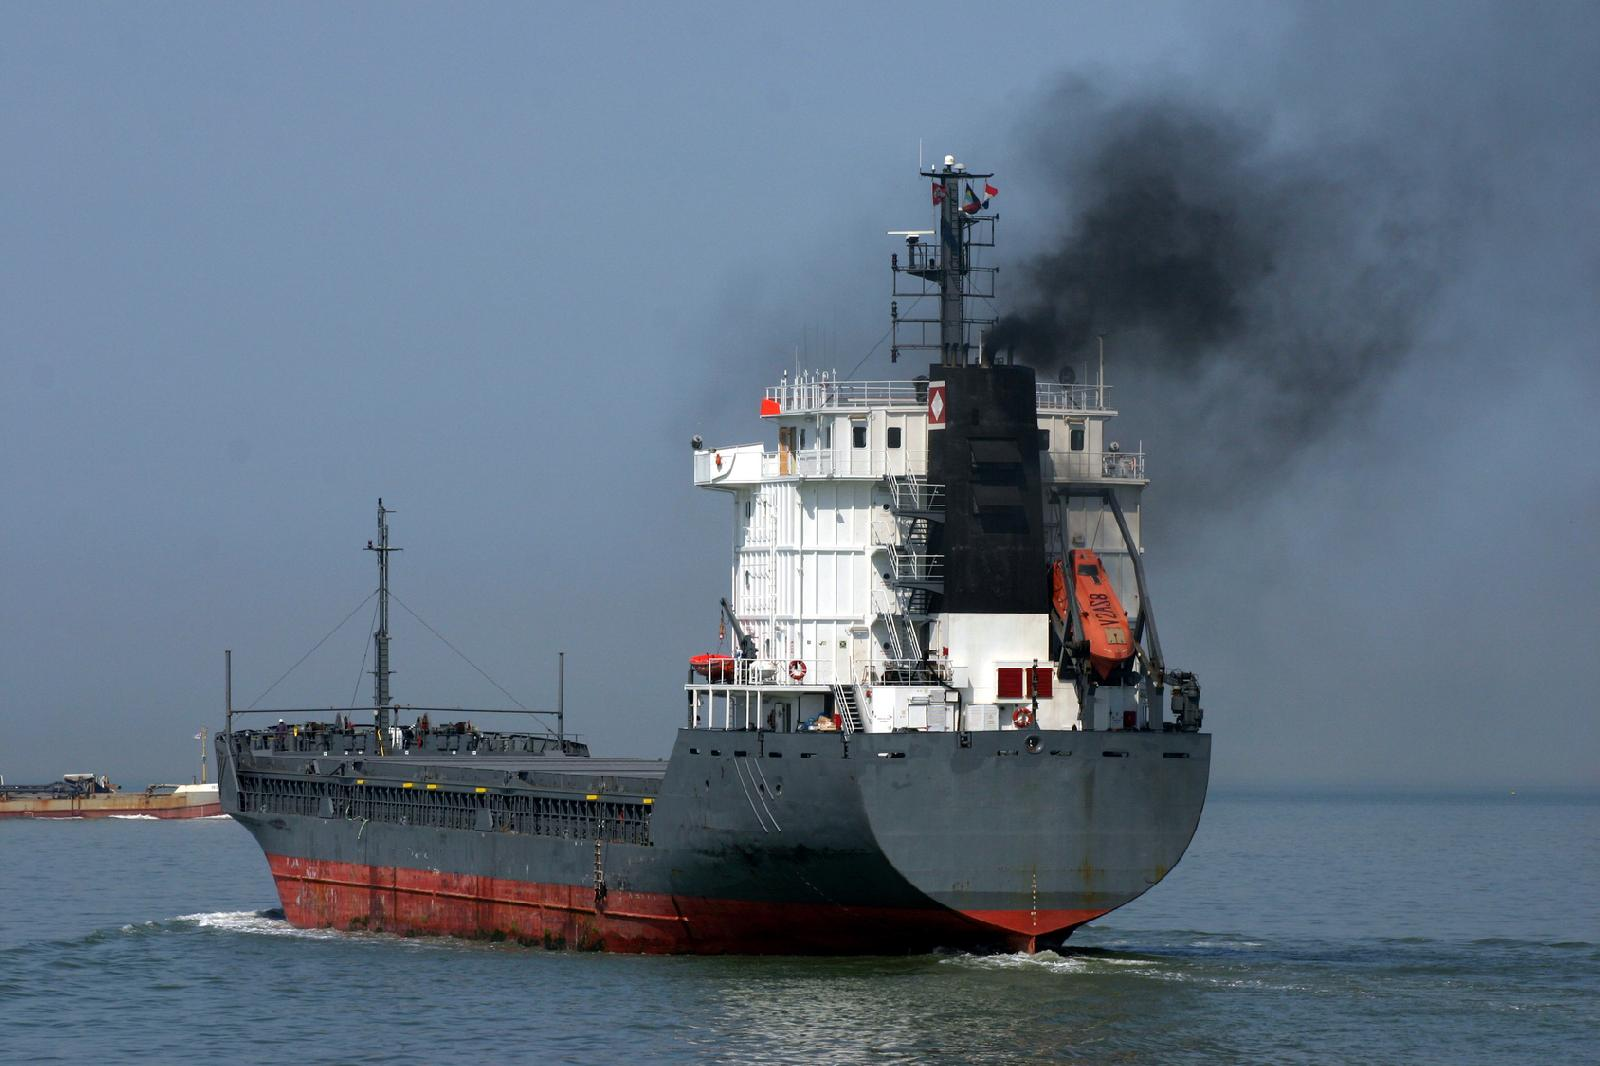 EU to force ships to post CO2 emissions to save world from global warming